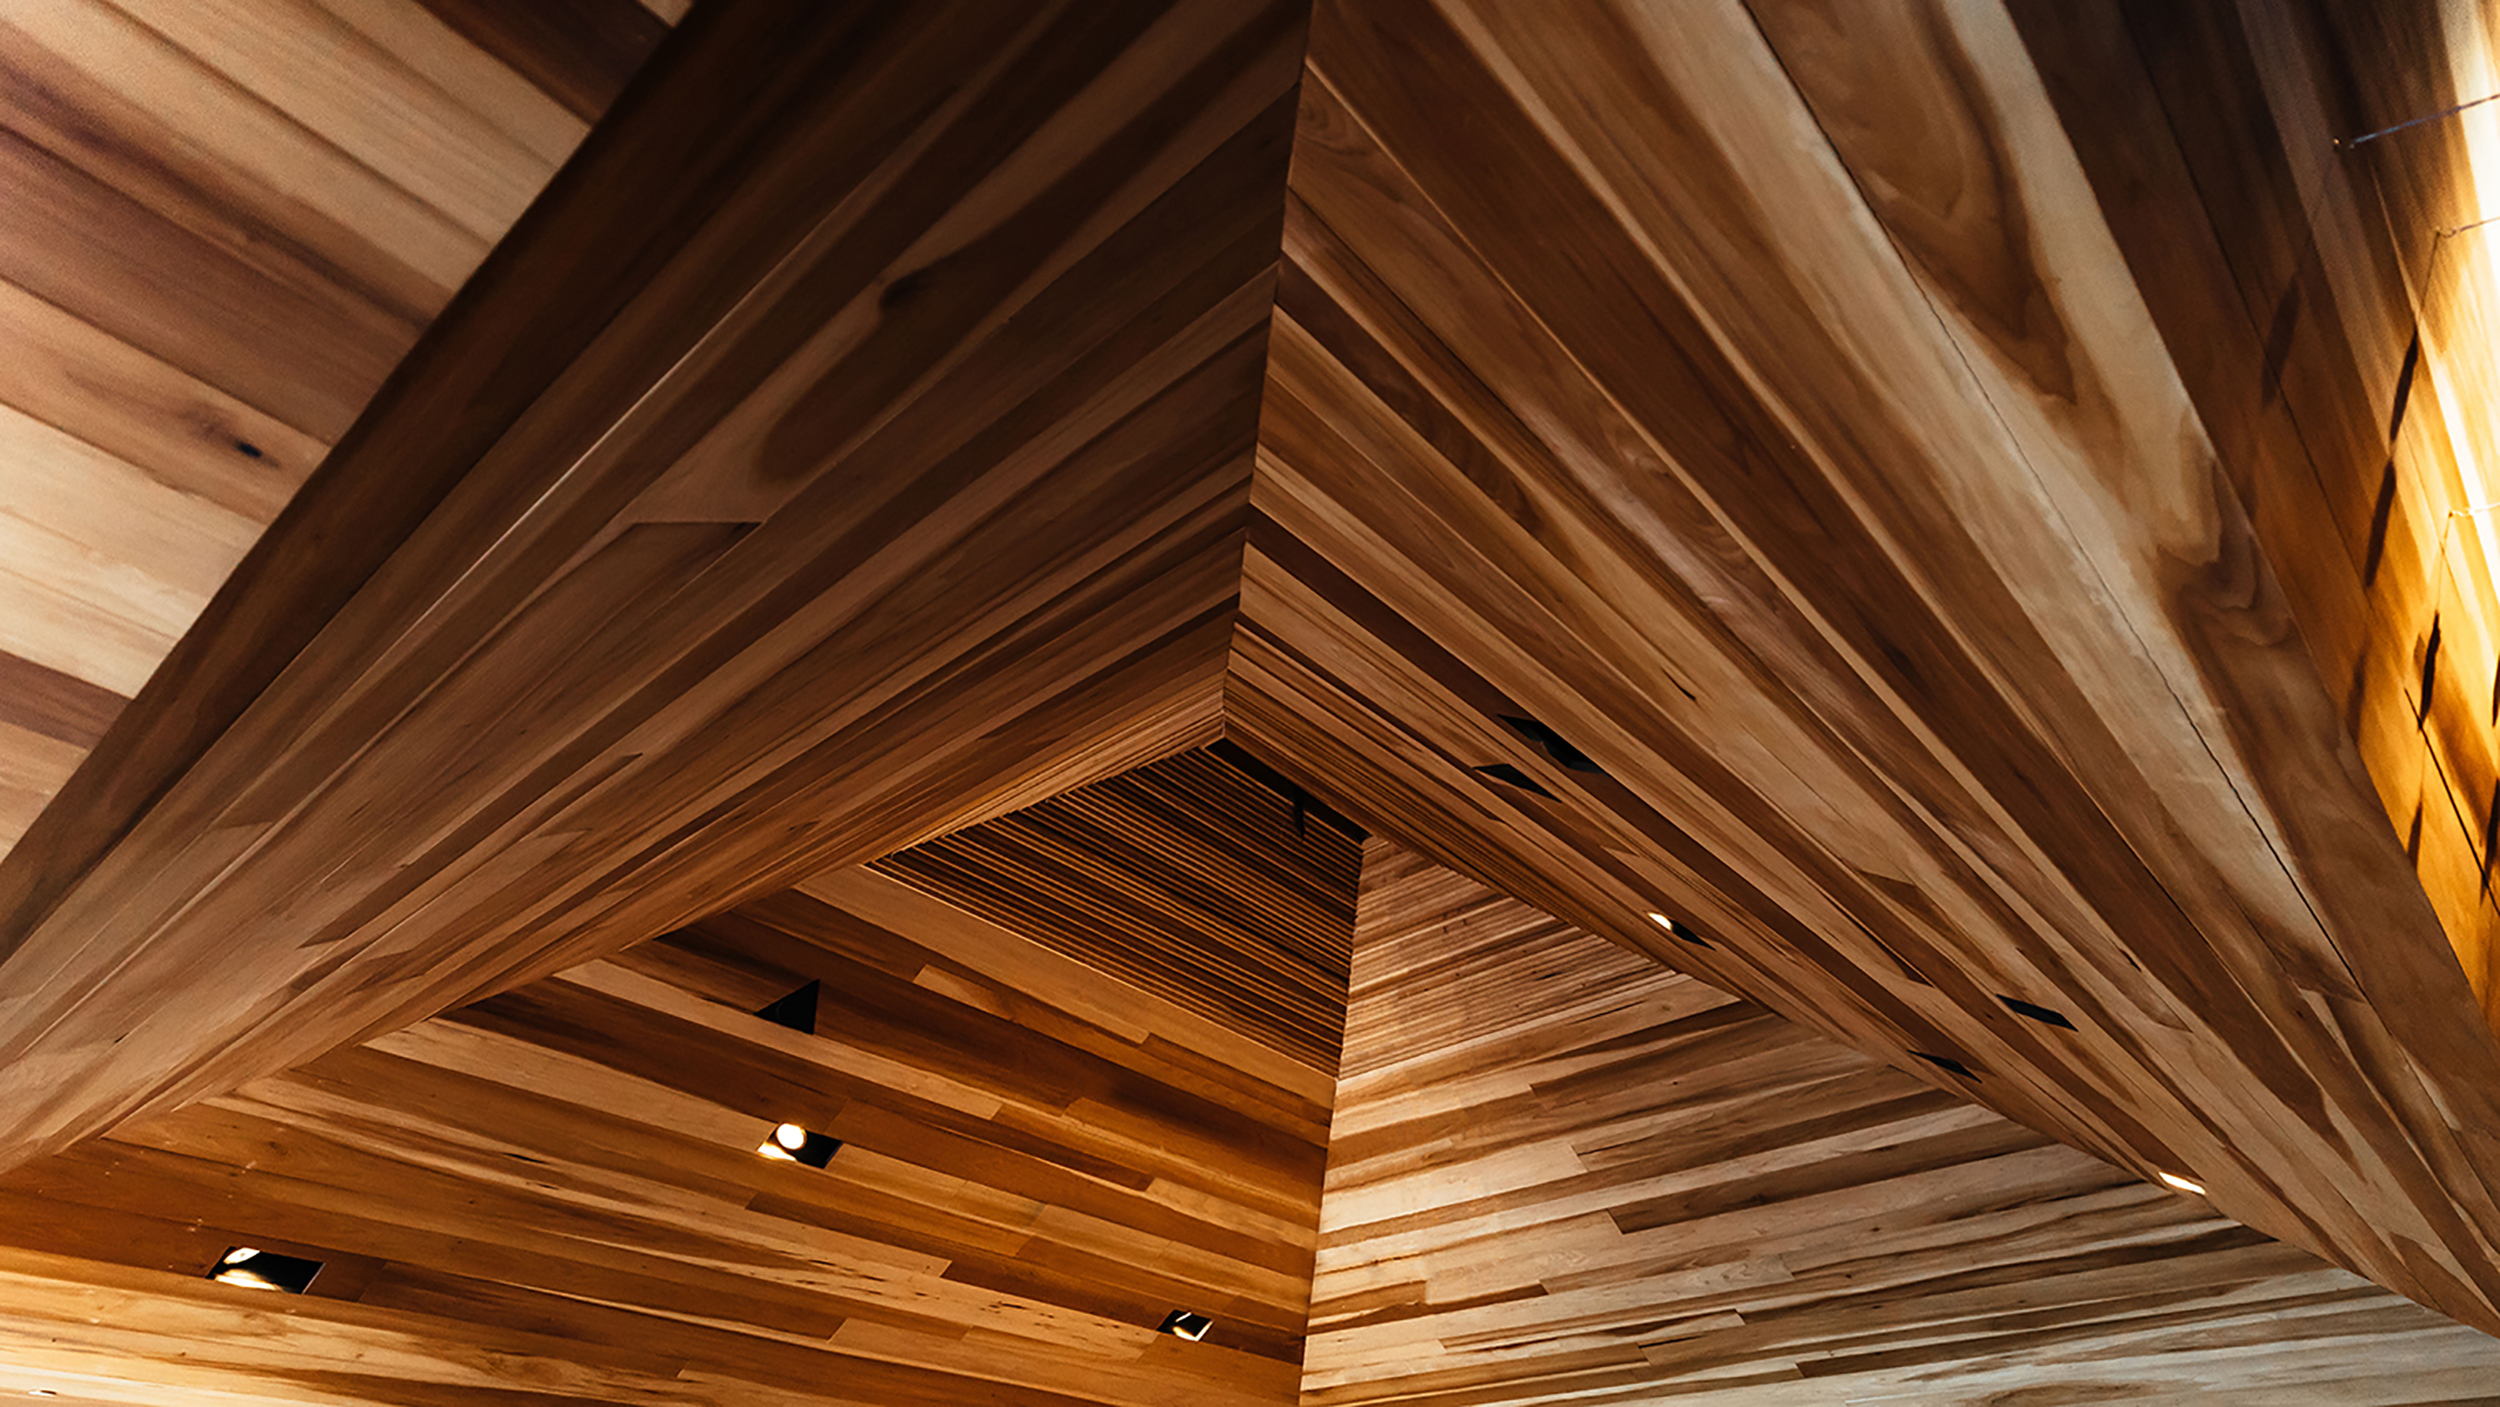 Designed by Michael McDermott, the interior of Miminashi honors the spirit of Japanese culture.